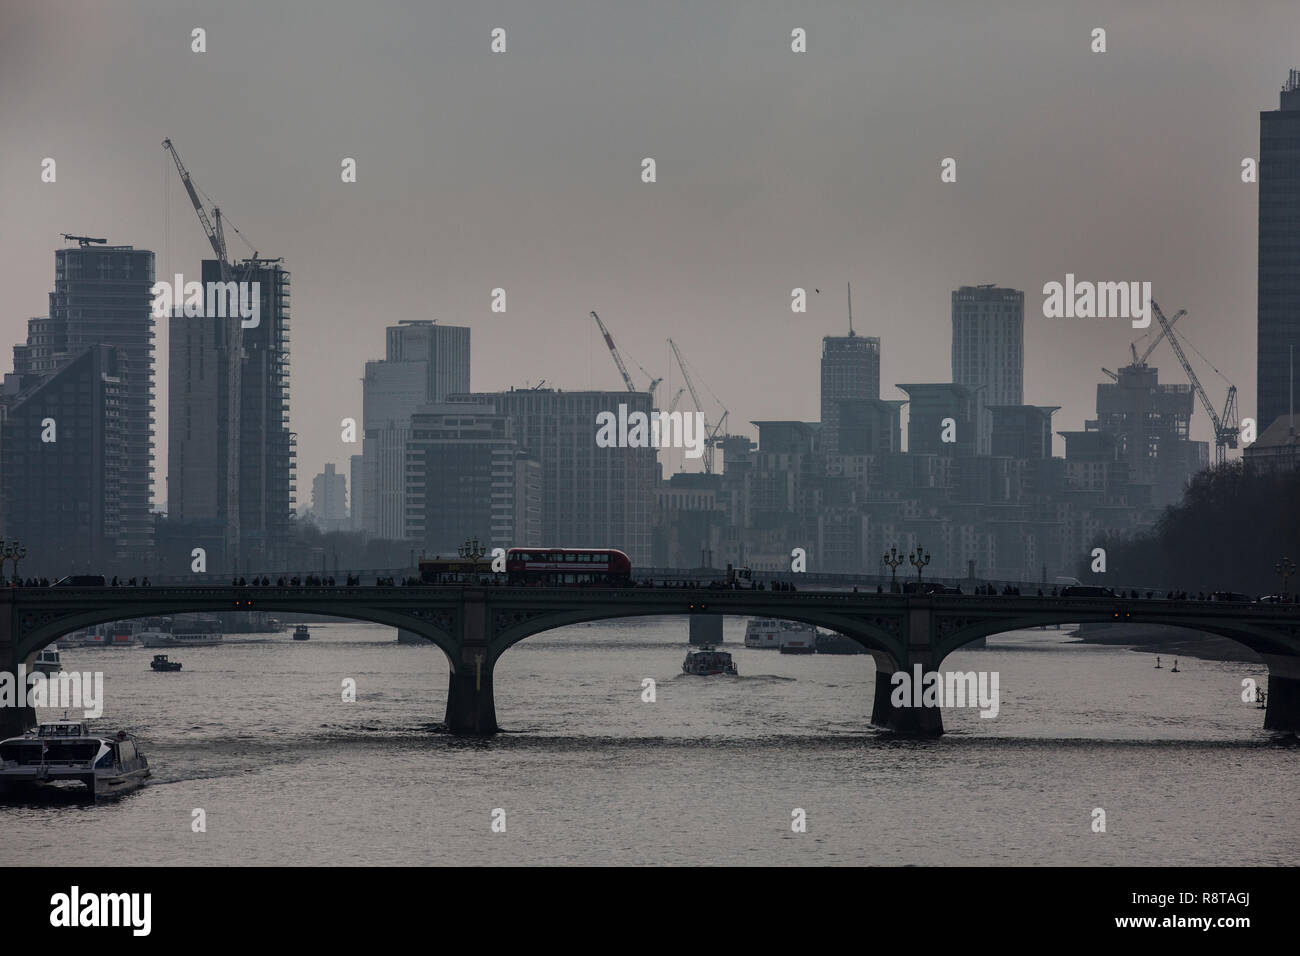 Pollution sits on the horizon over Westminster Bridge, central London, England, UK - Stock Image